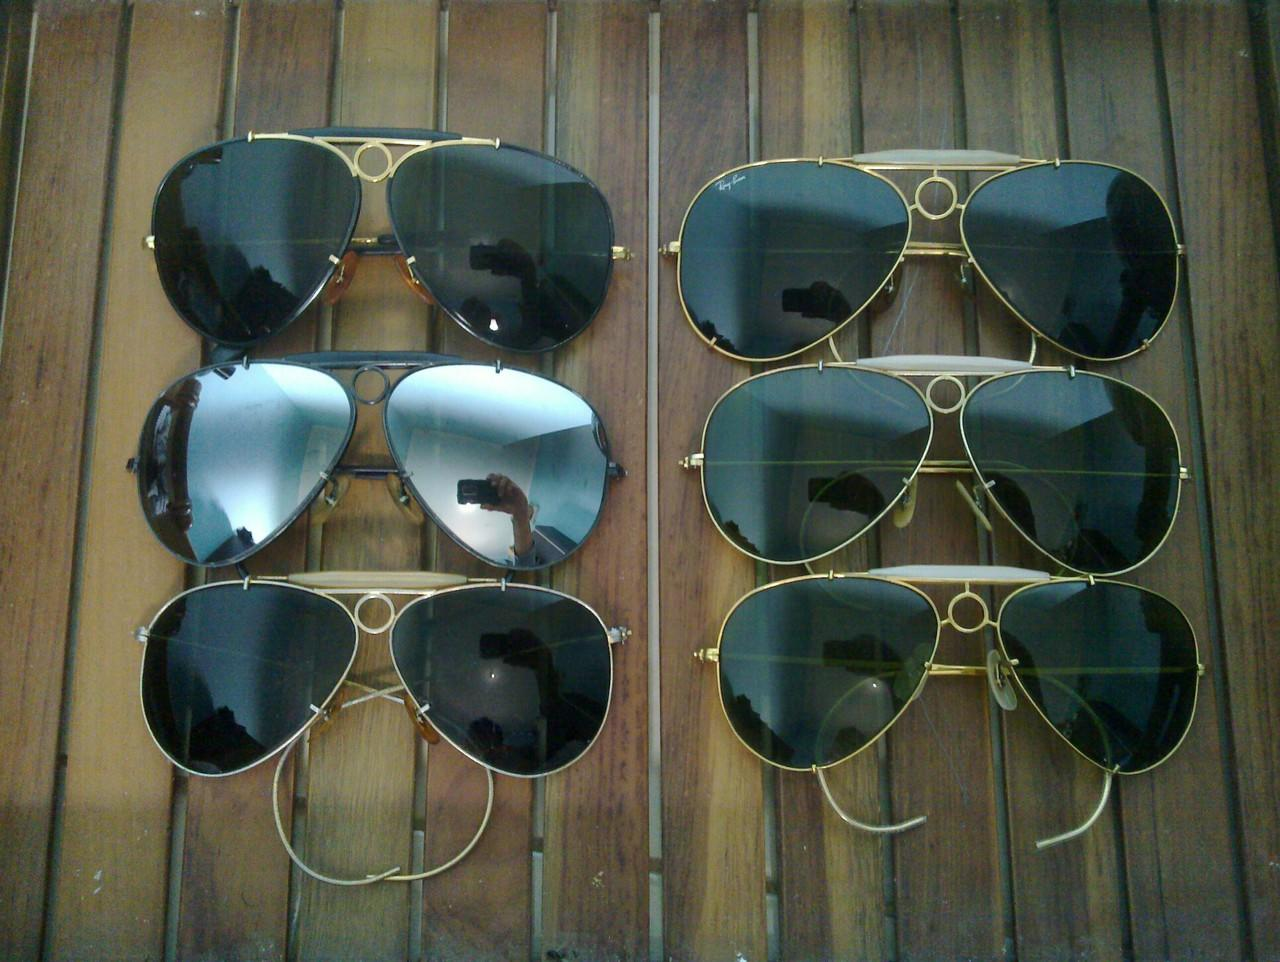 200bdef93c ☀☀ RAYBAN Enthusiast - Never Hide ☀☀ - Page 169   KASKUS